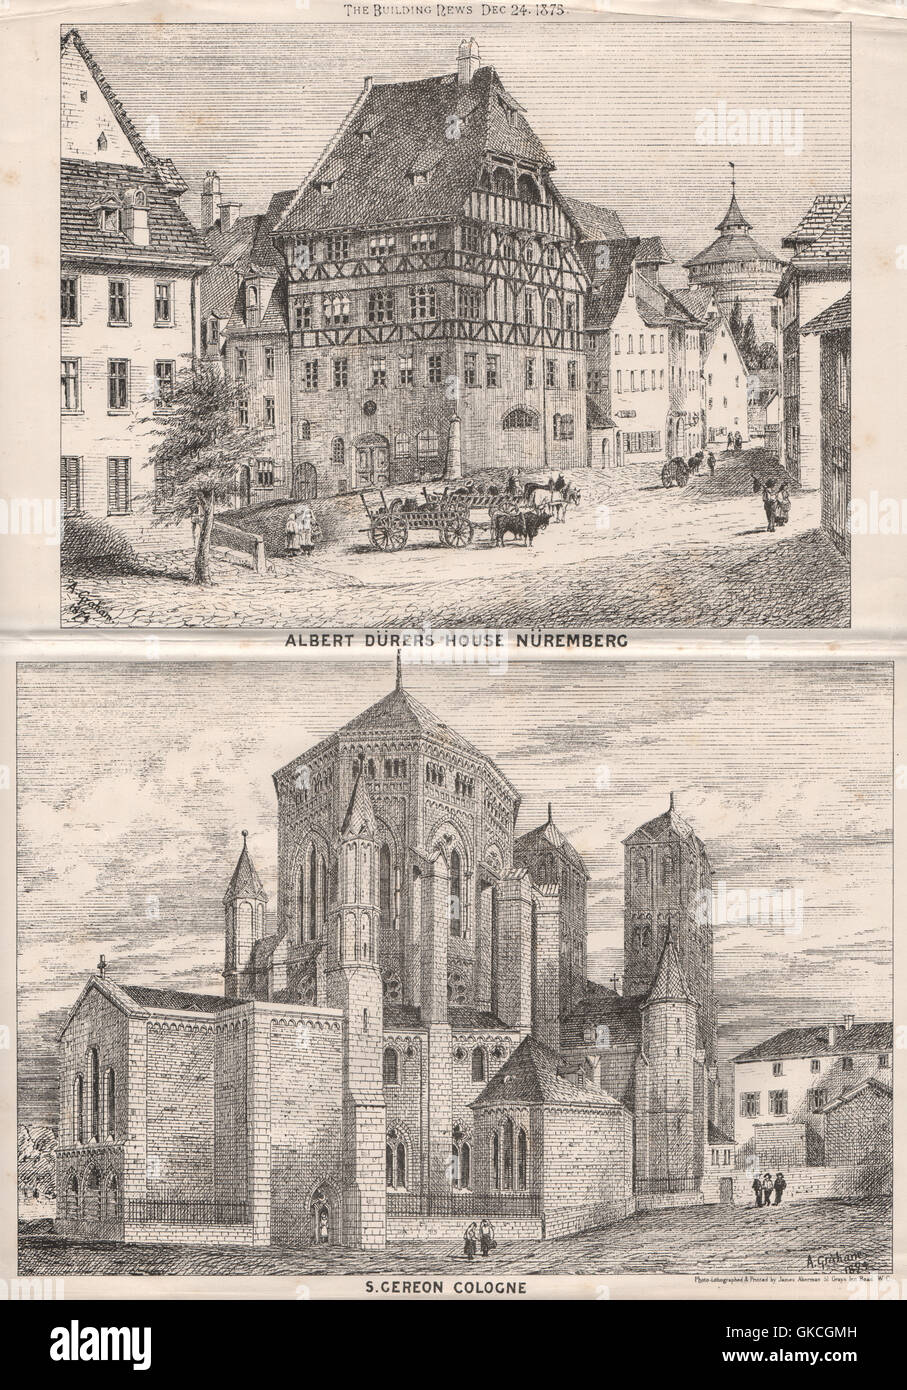 Albert Dürer's House, Nüremberg; S. Gereon Cologne. Germany, old print 1875 - Stock Image